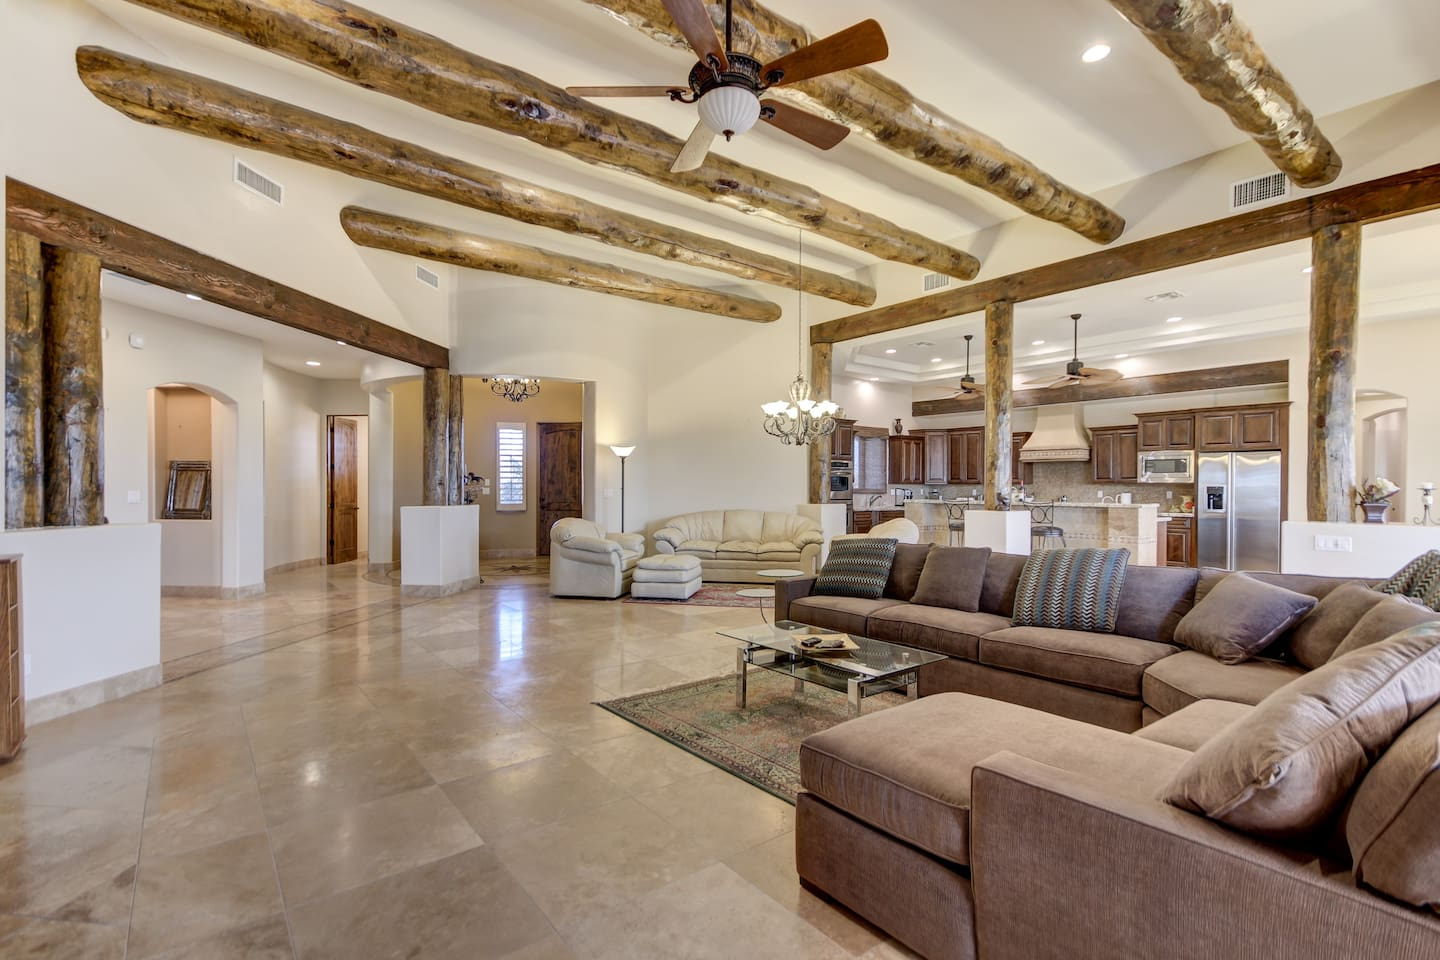 Living area with couches, TV and indoor fireplace and open concept kitchen.